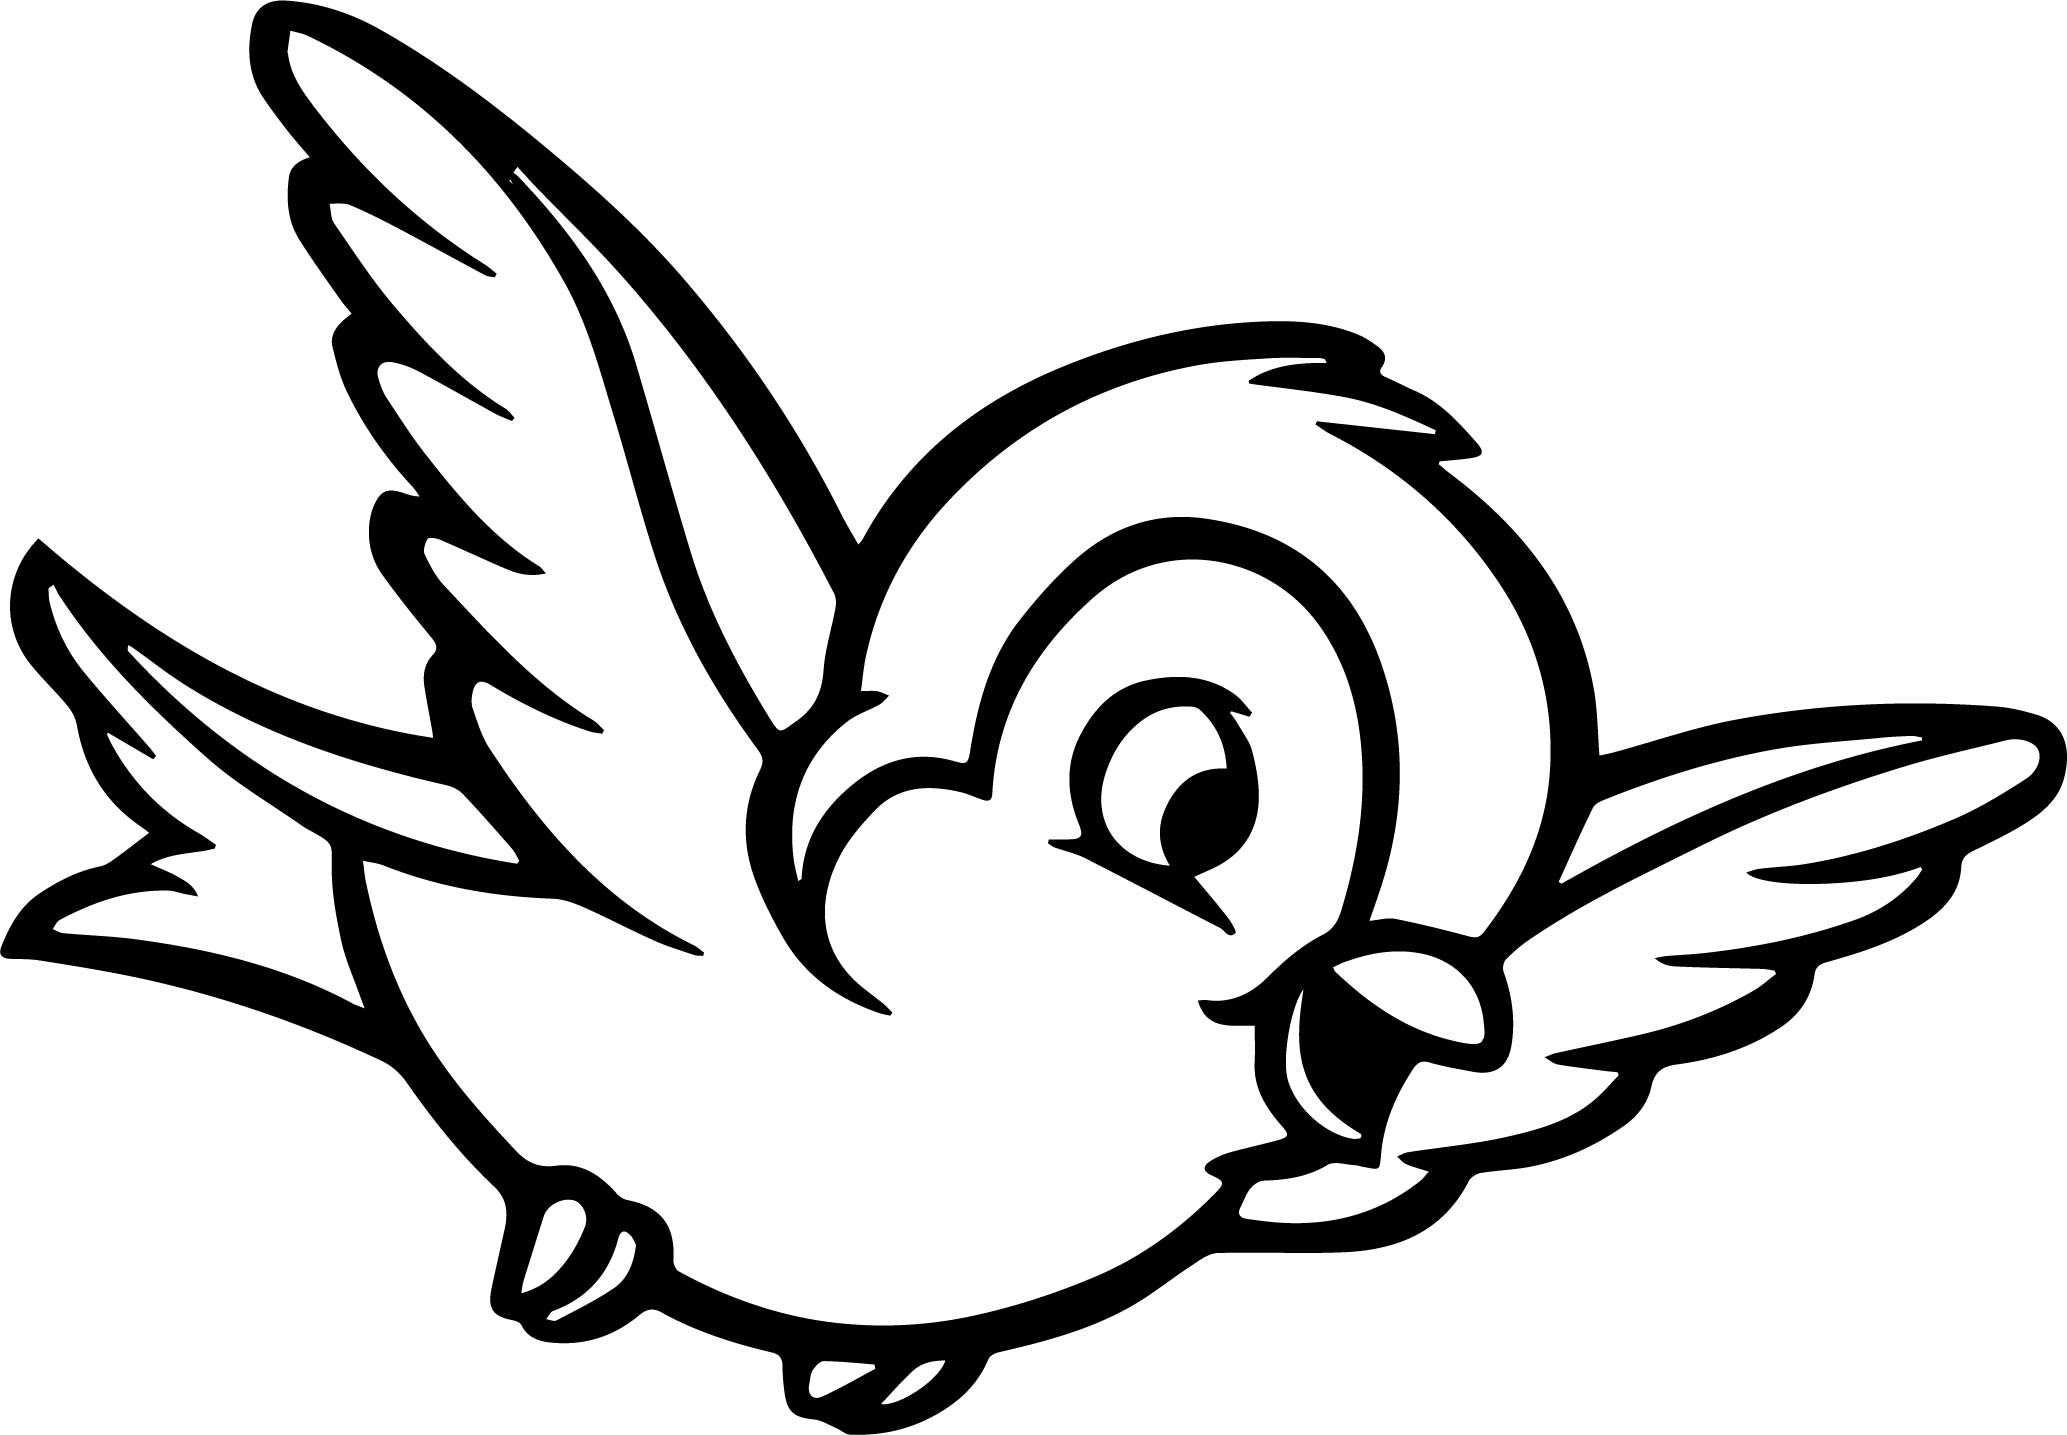 coloring pages for kids birds birds free to color for children birds kids coloring pages pages birds for coloring kids